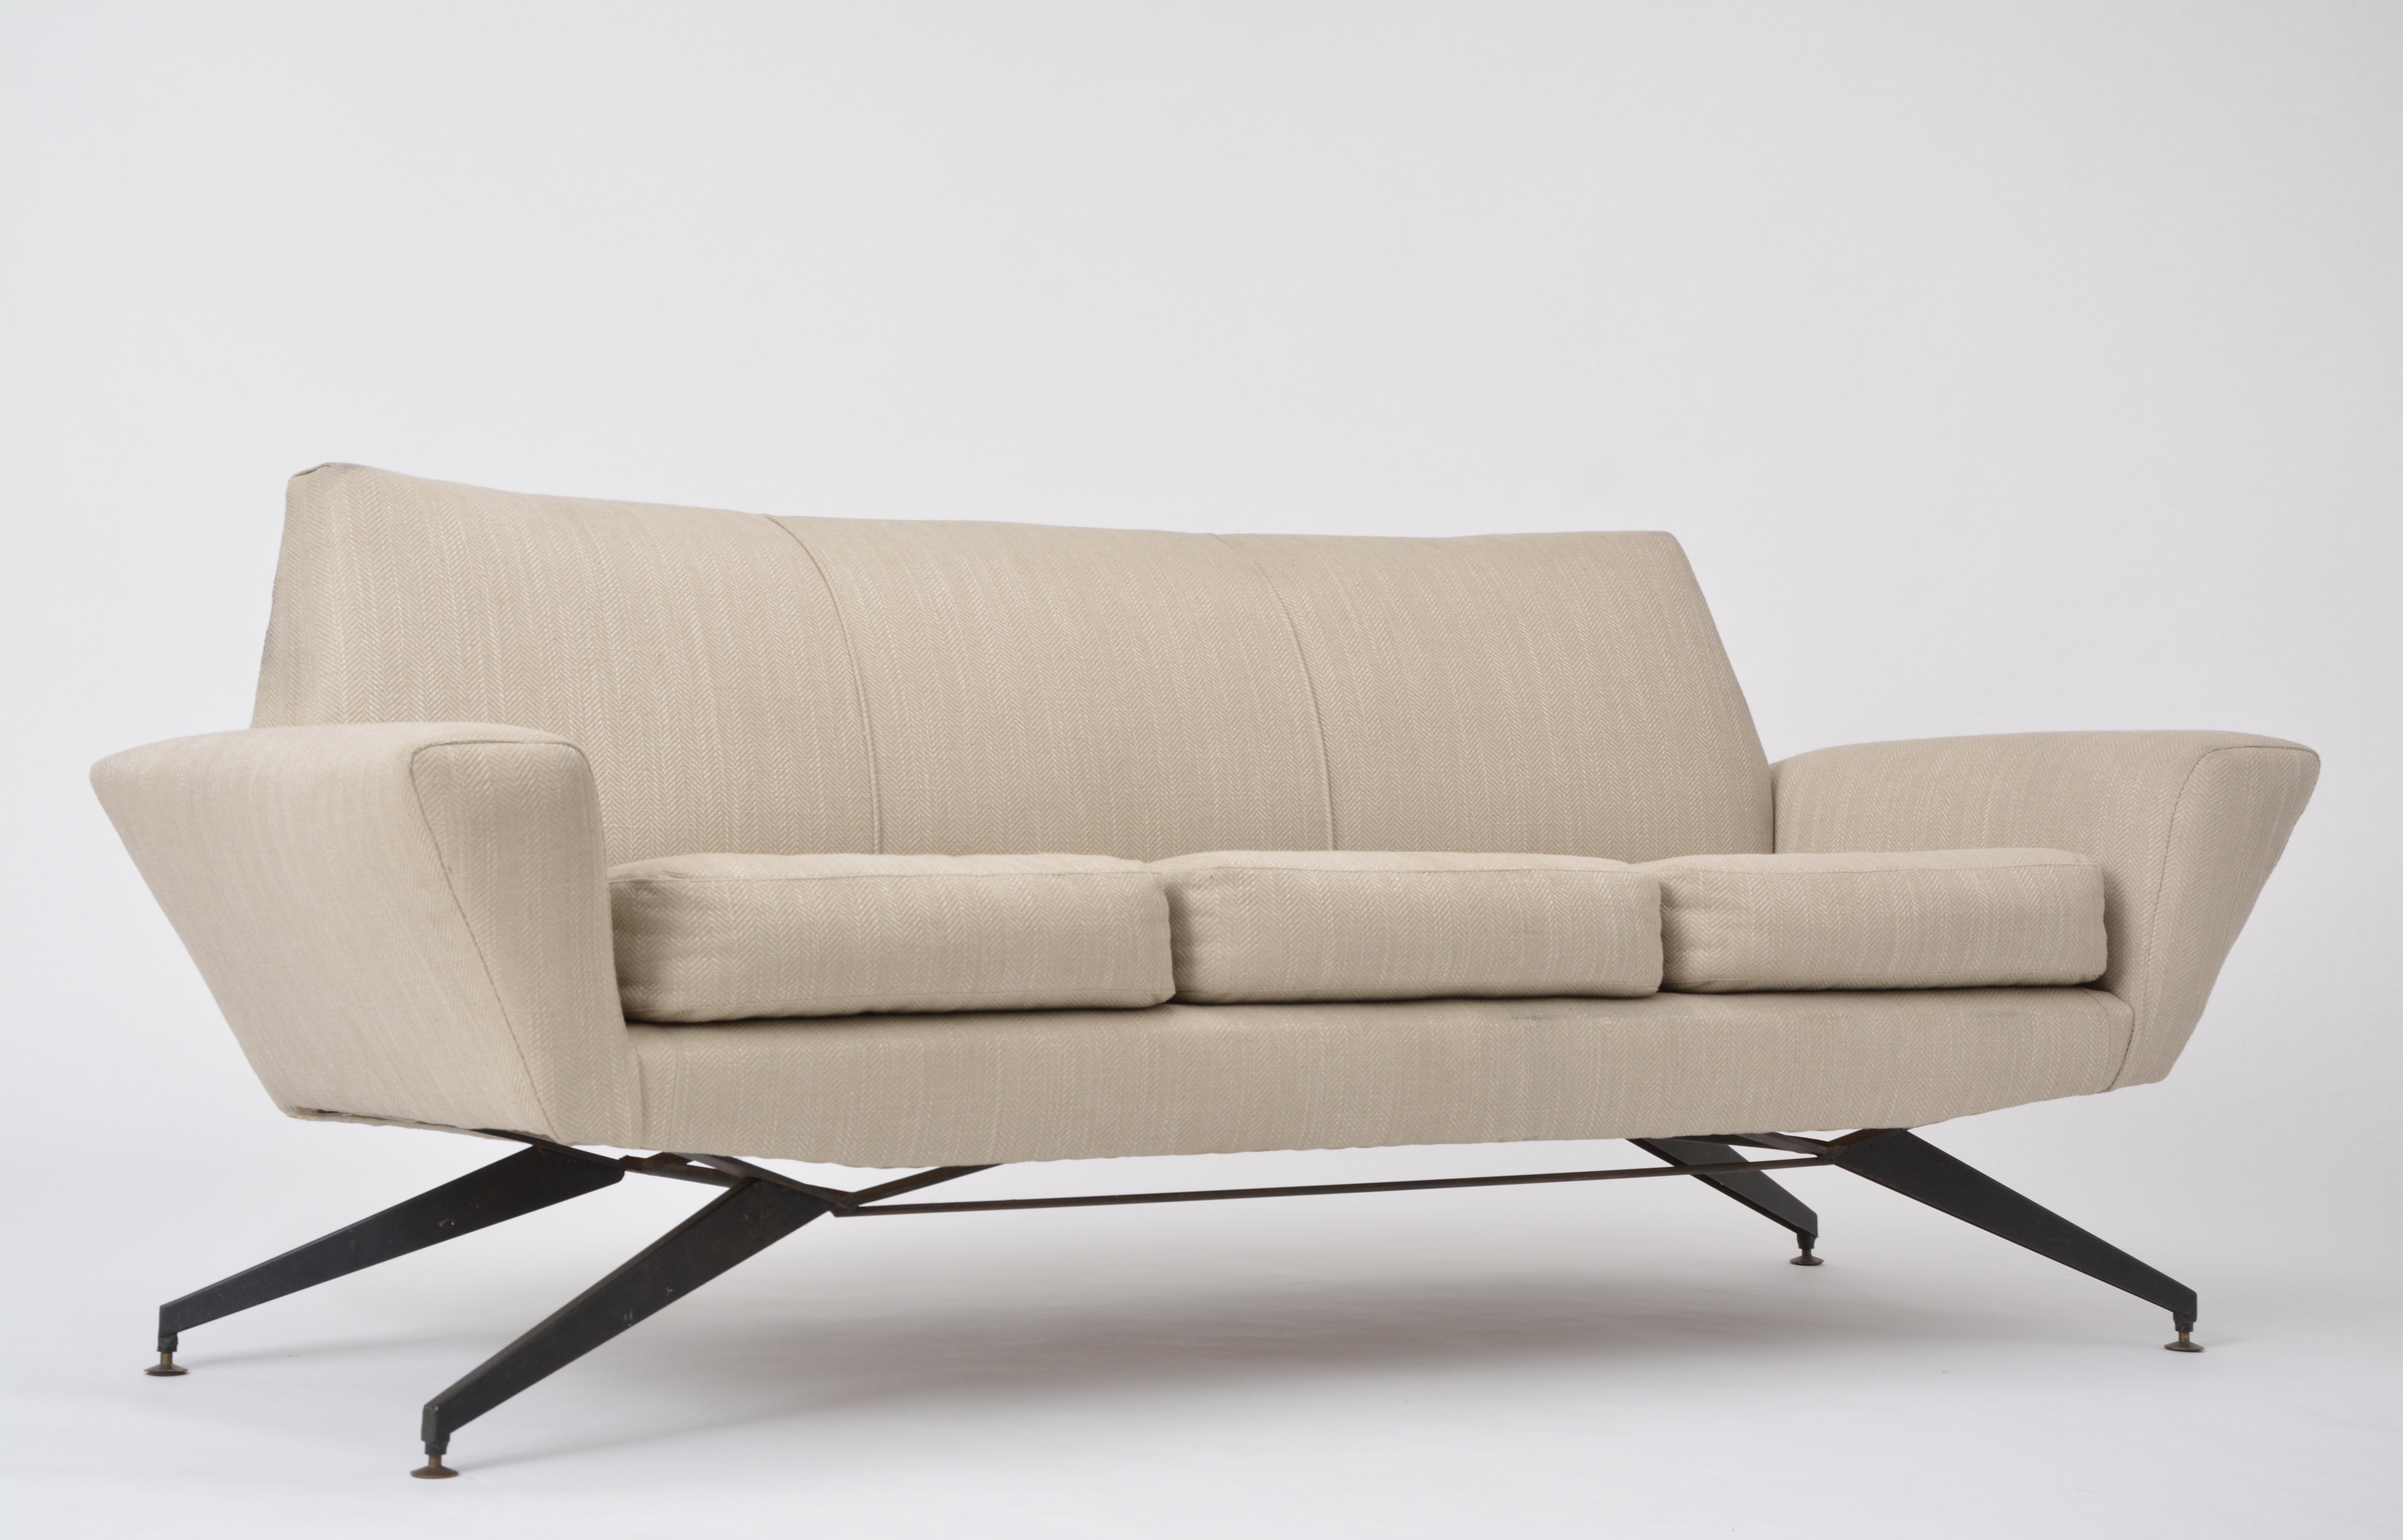 Italian Sofa With Metal Base By Lenzi